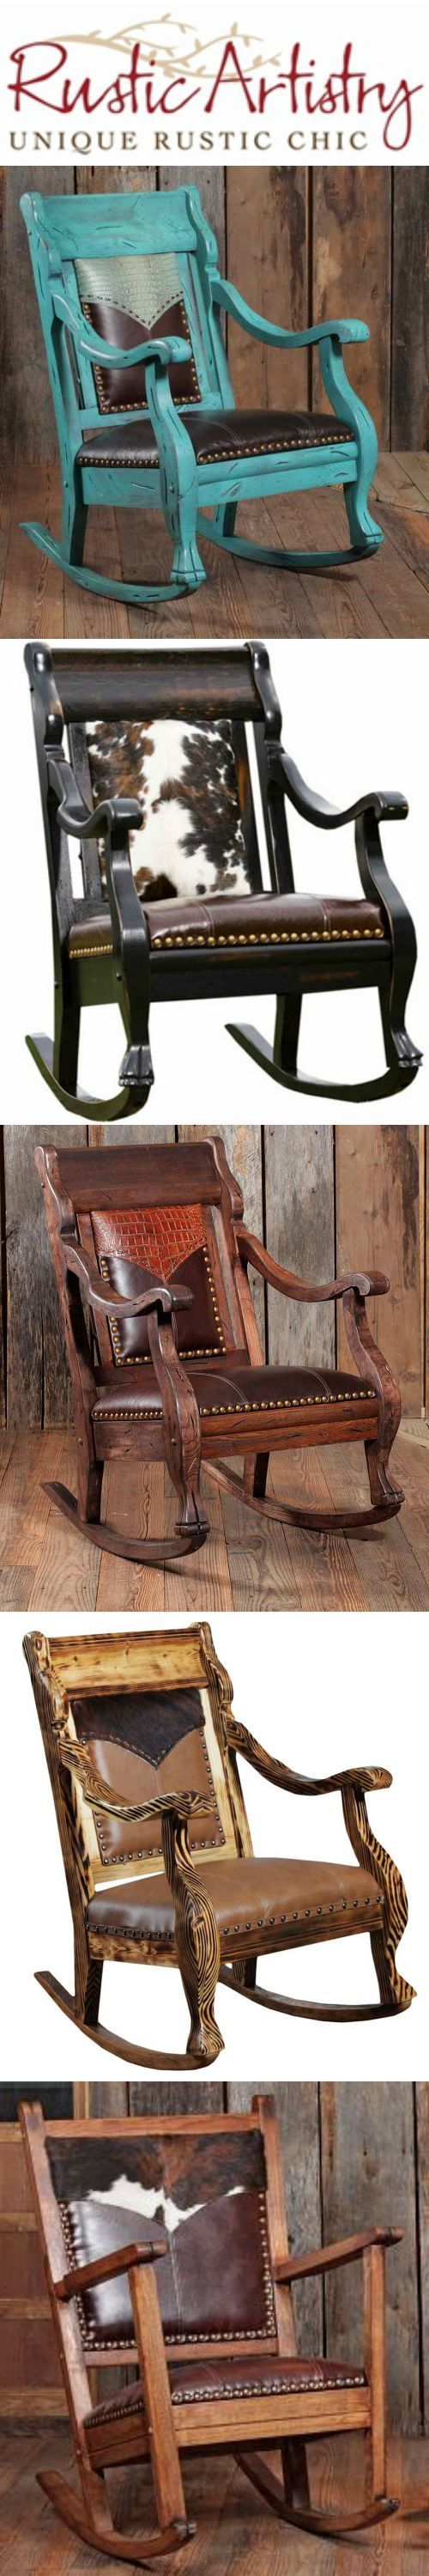 All rockers ON SALE through end of August. $100 OFF plus FREE SHIPPING http://rusticartistry.com/product-category/room/rustic-living-room-dining-room-furniture/rockers/